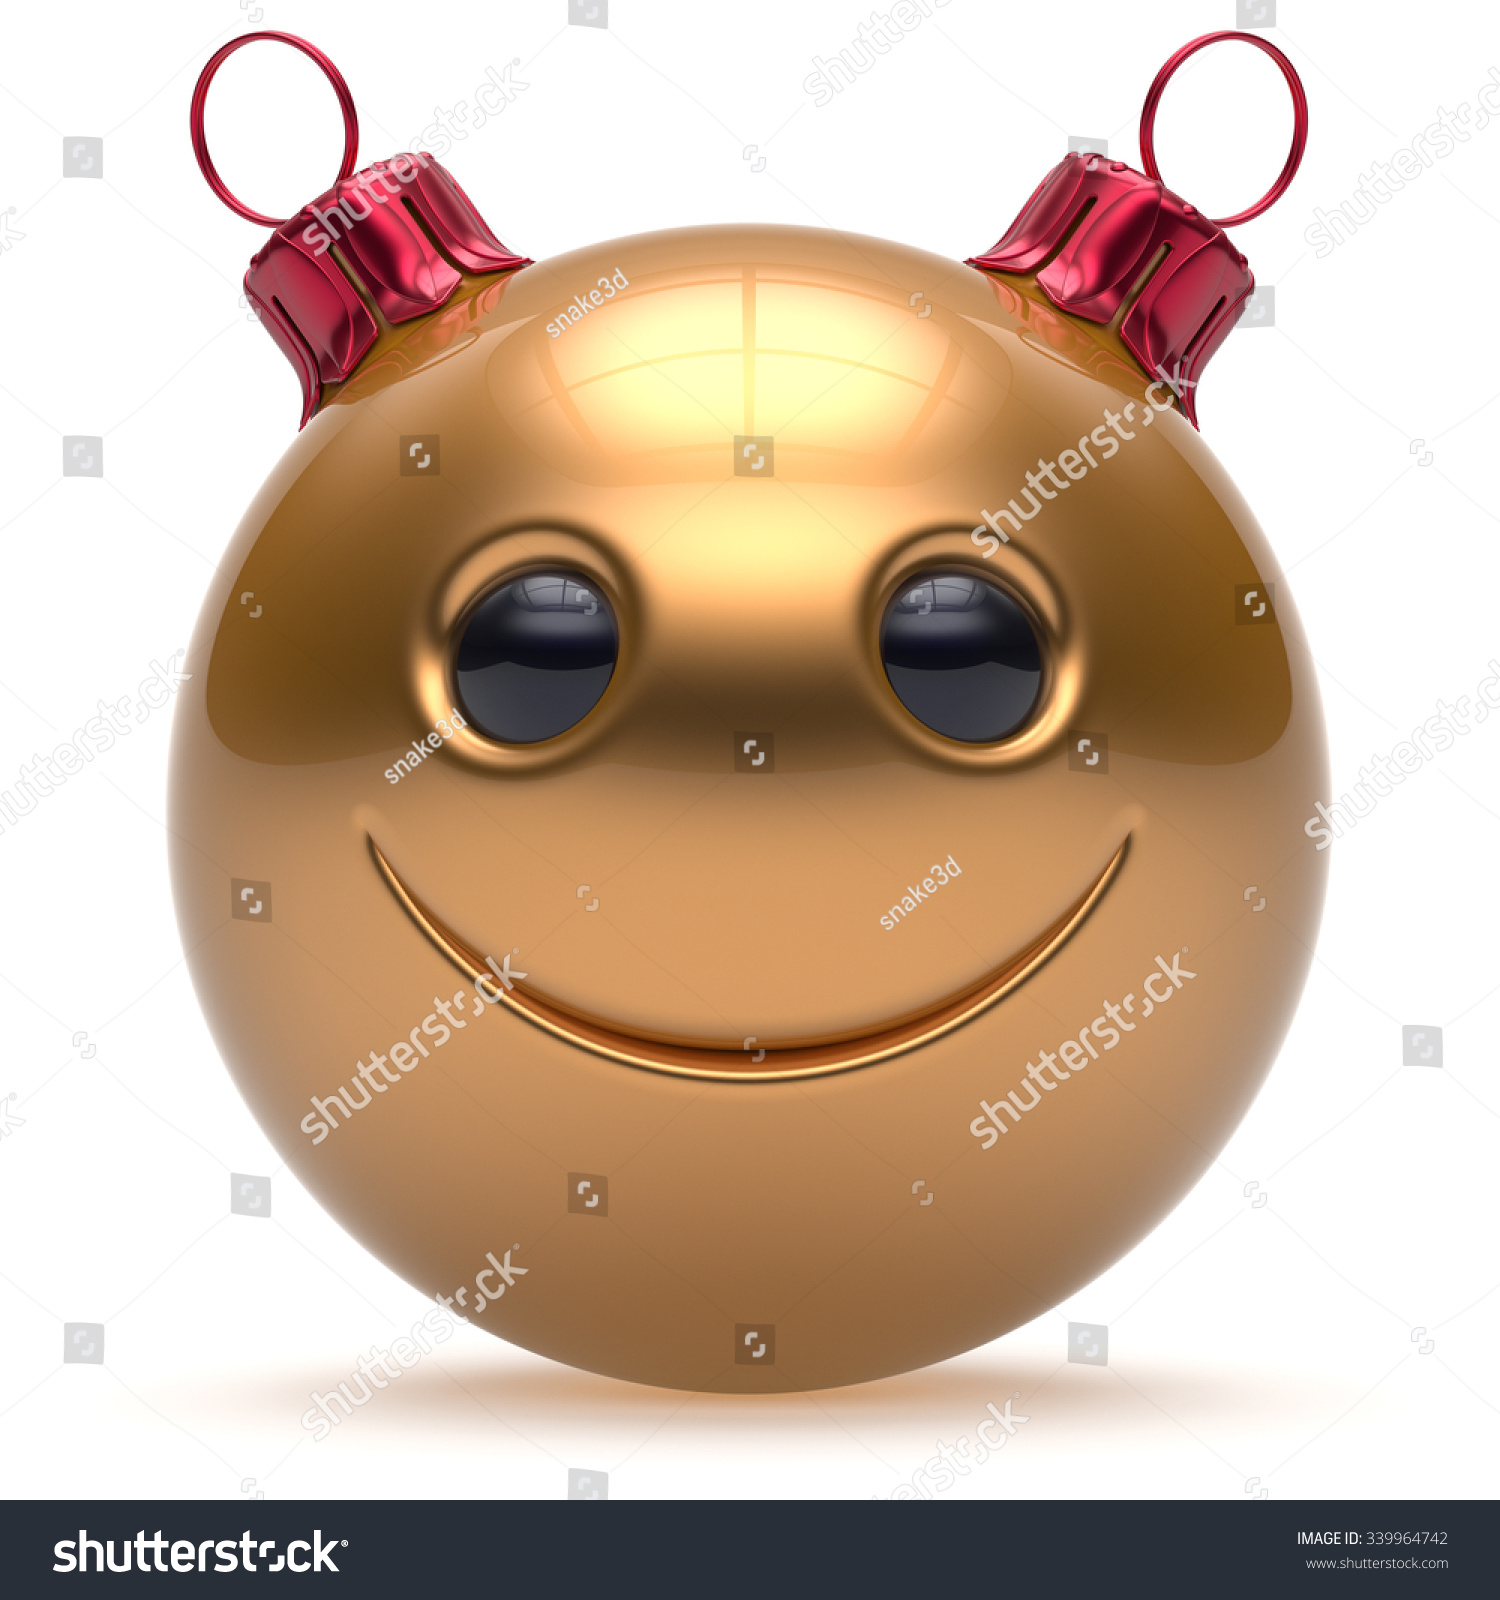 Christmas ball smiley face happy new year s eve emoticon